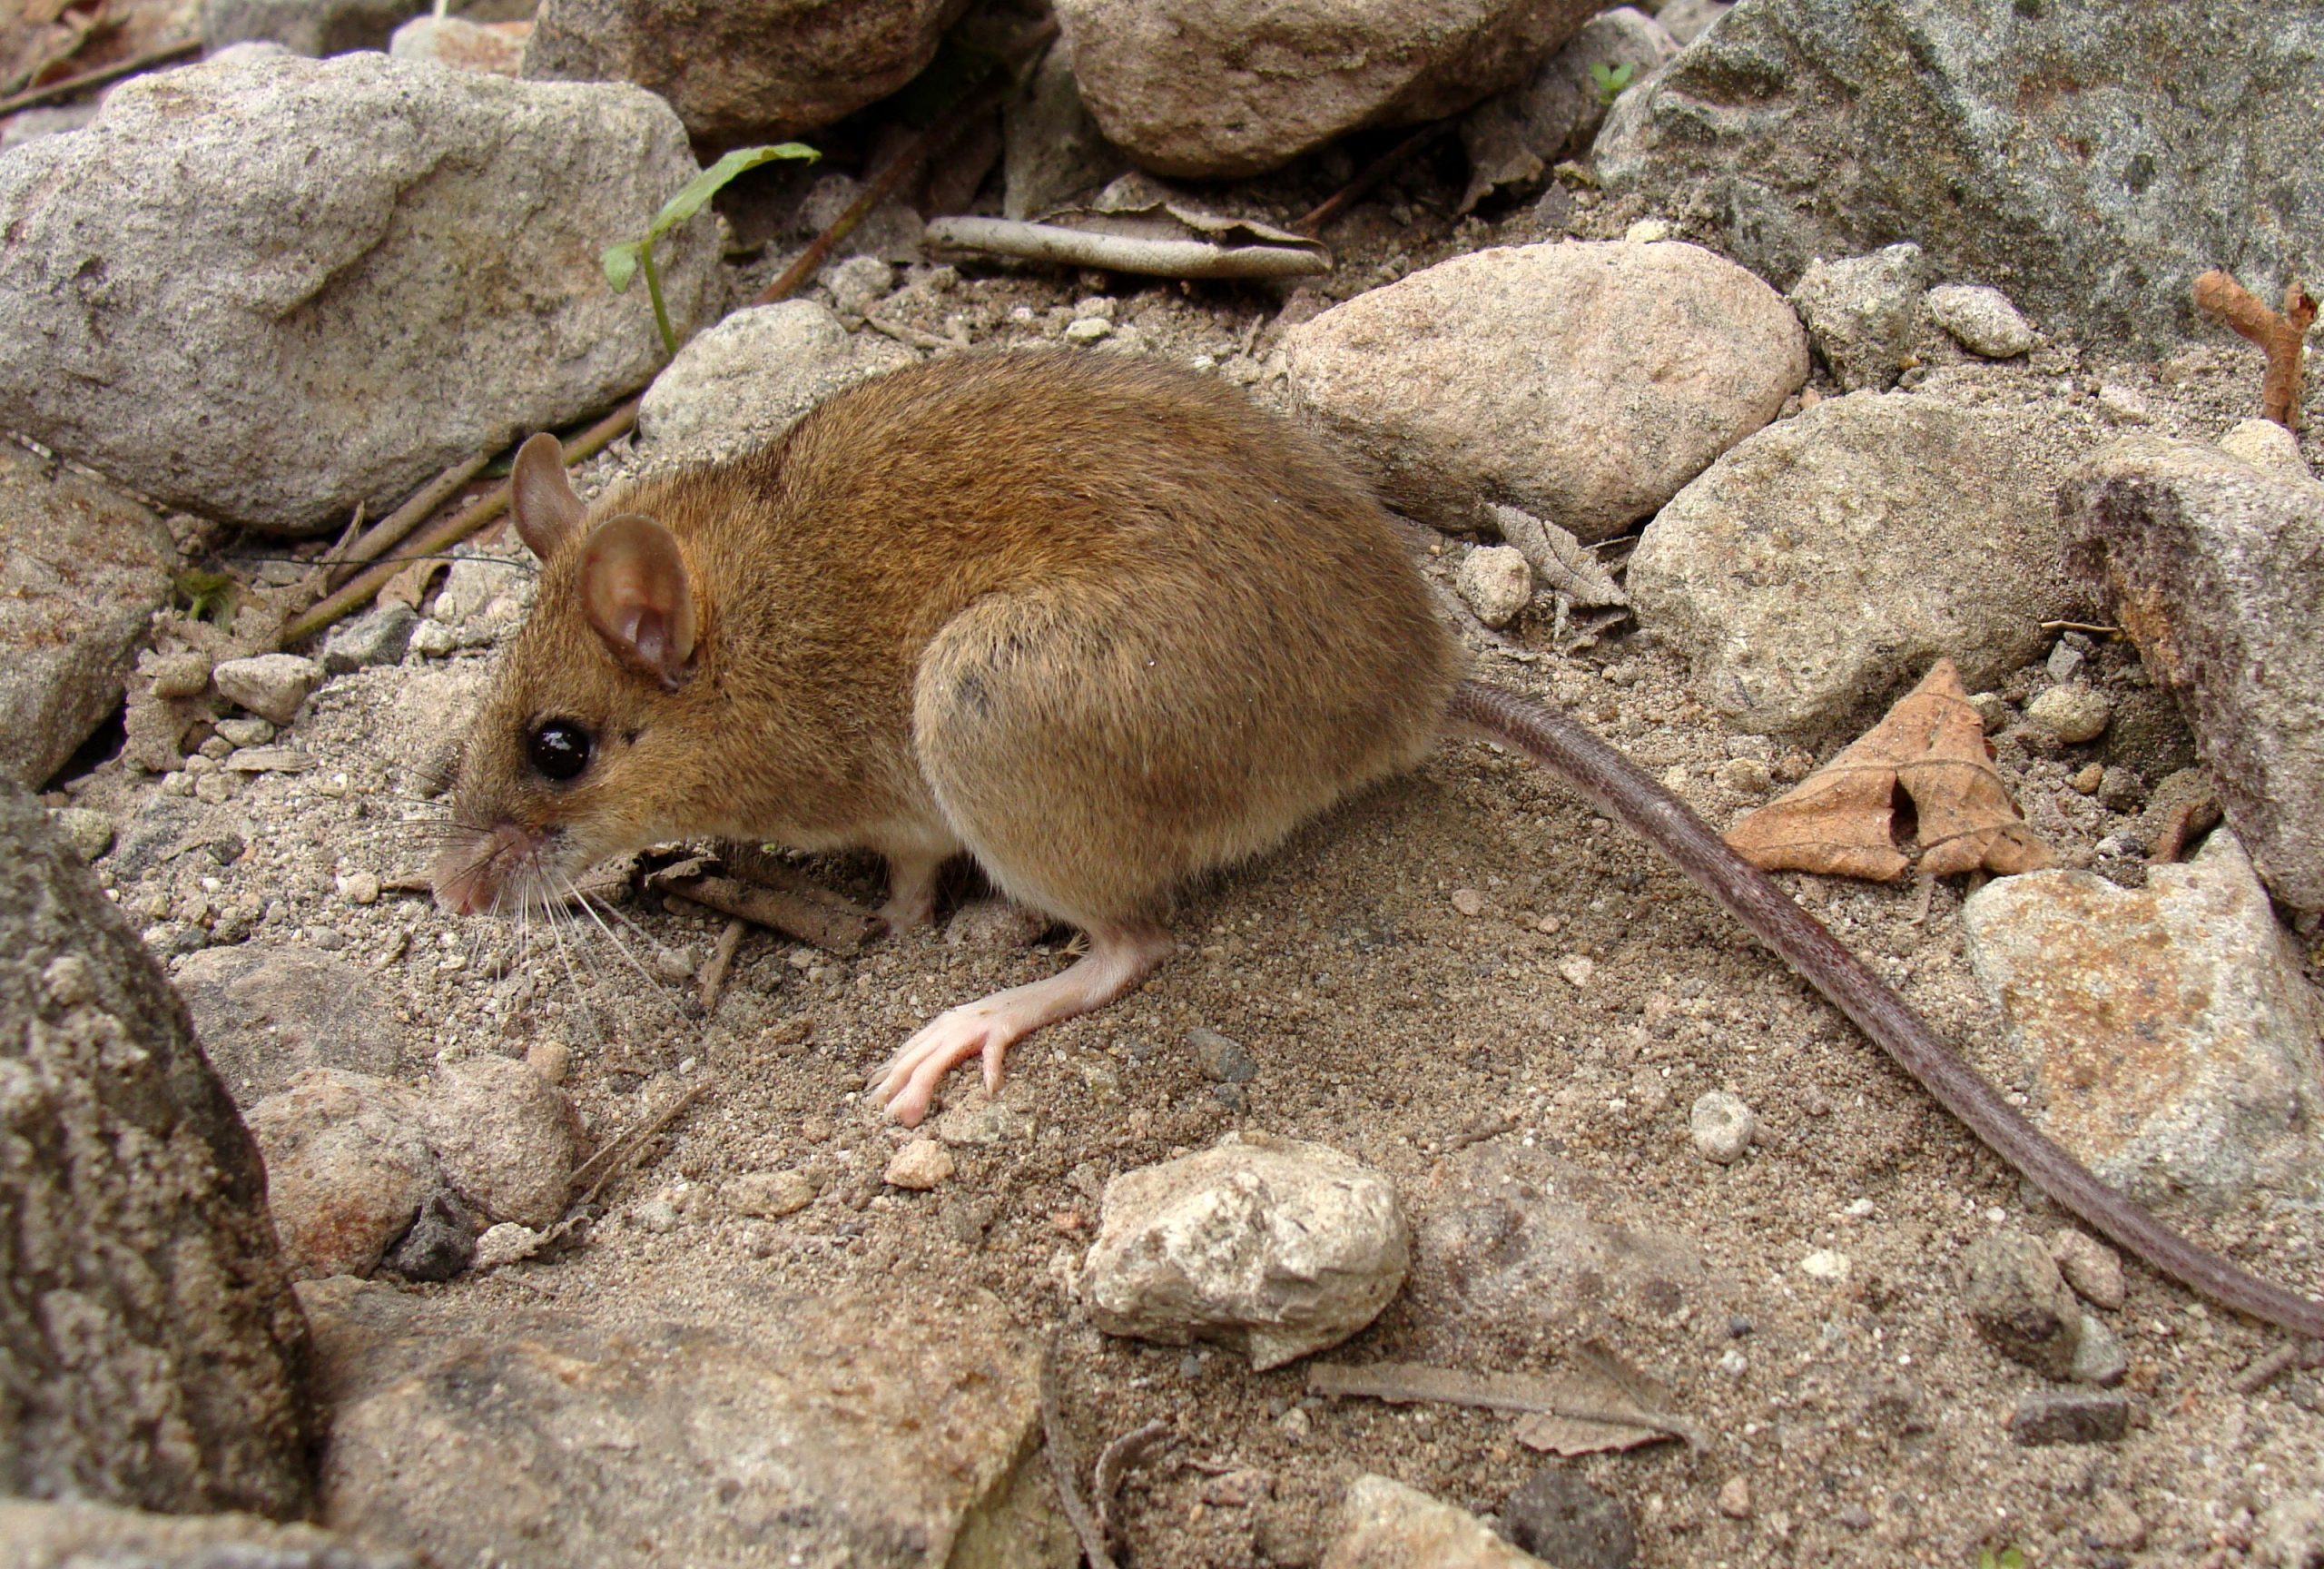 """""""Extinct"""" Pinatubo Volcano Mouse Rediscovered on Volcano That Erupted 30 Years Ago"""